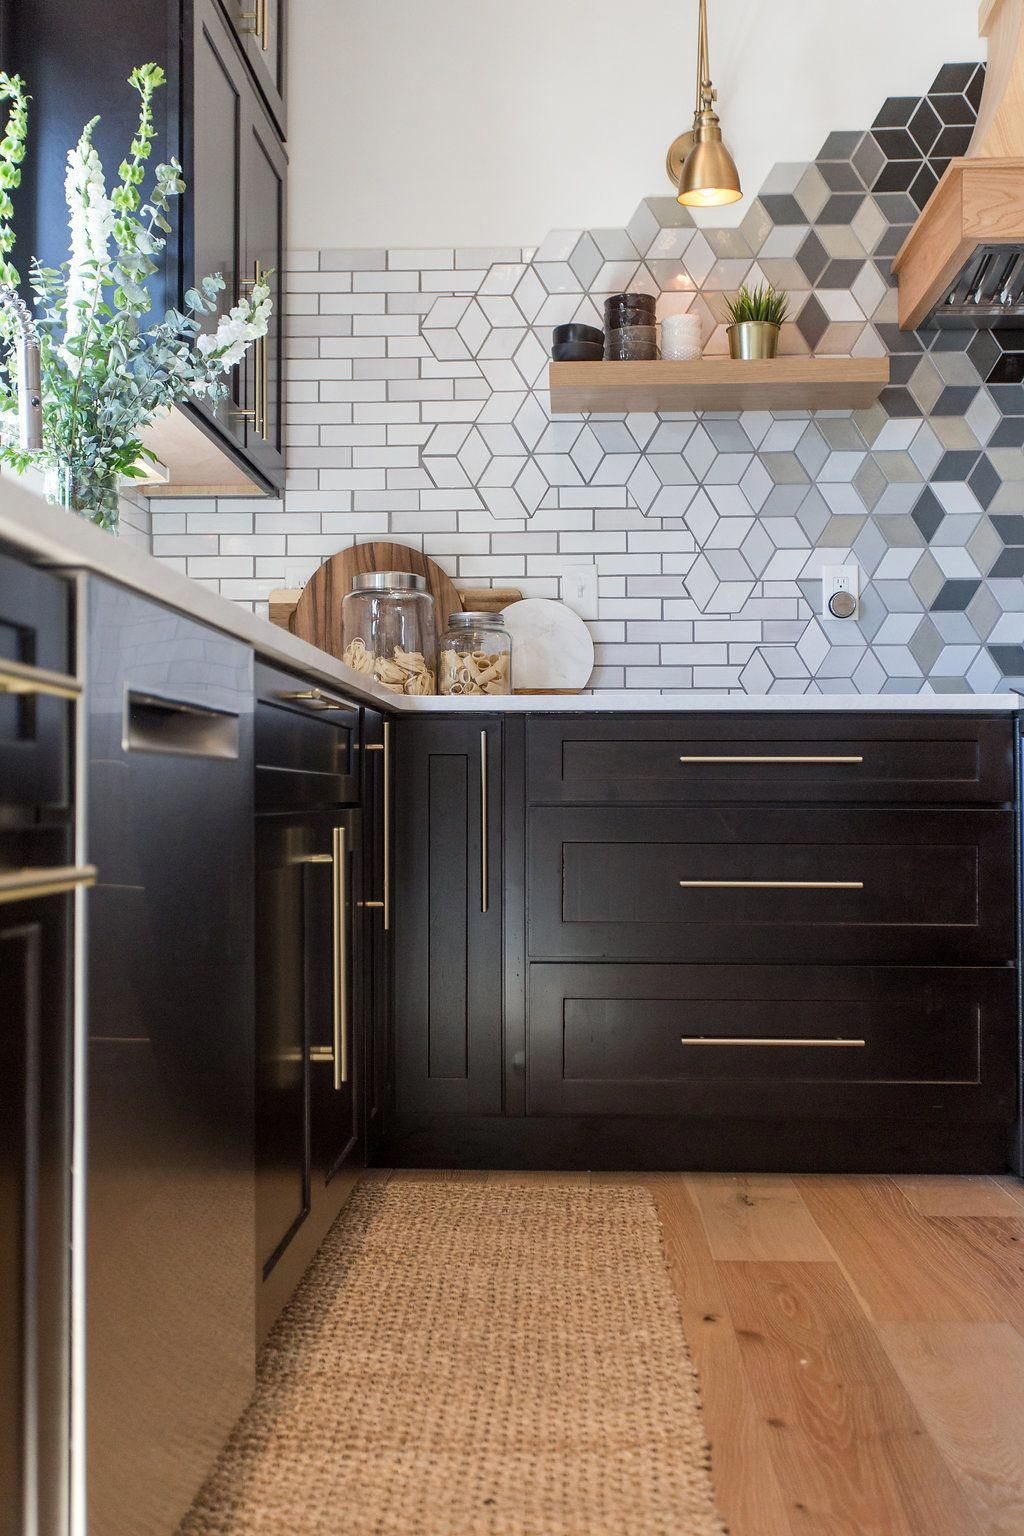 our kitchen remodel appliances construction2style remodeling